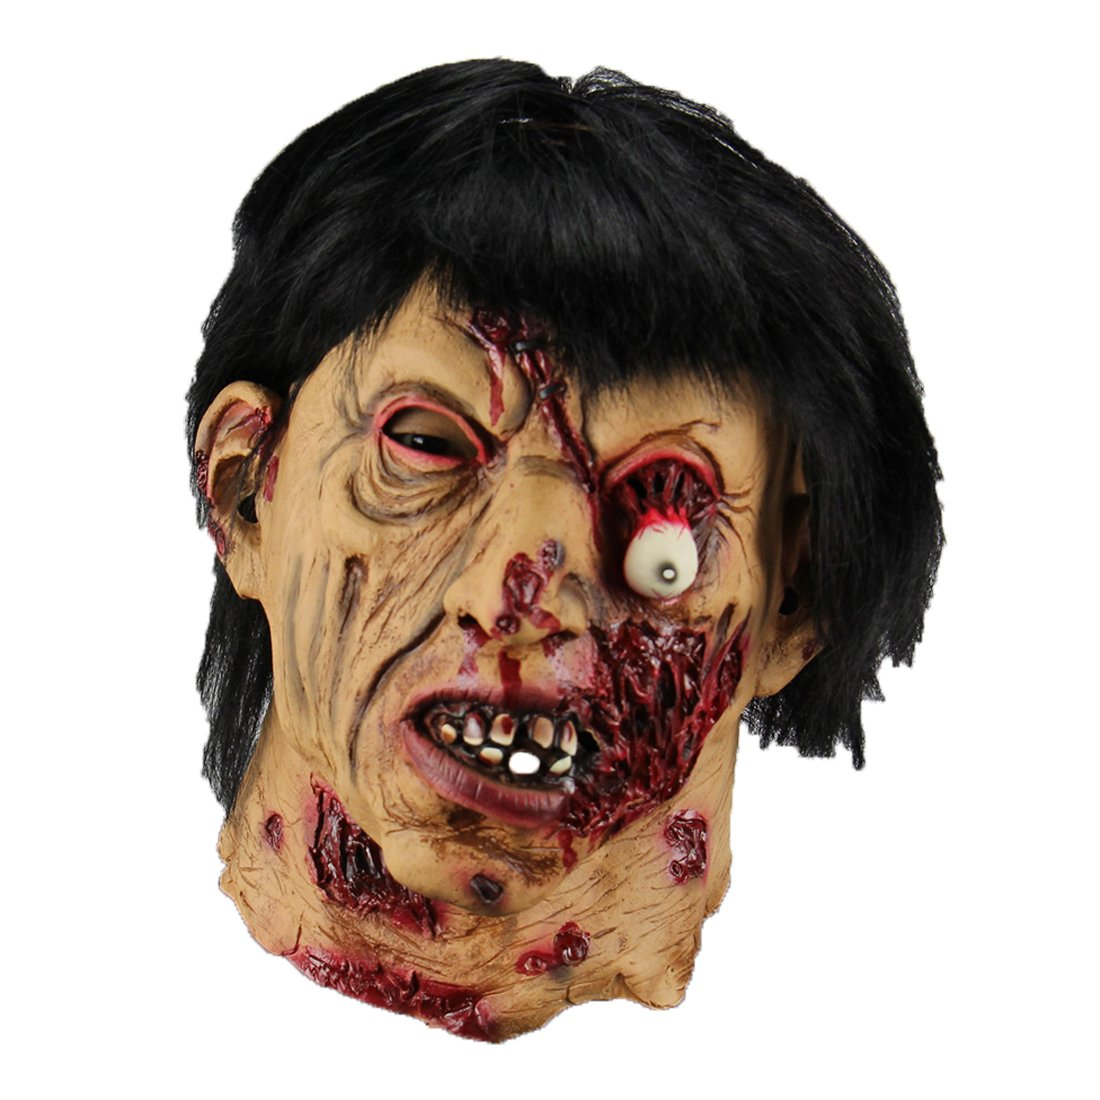 Hophen Halloween Horror Scary Creepy Zombies Mask Rot Face Props Scary Latex Black Hair Mask by Hophen